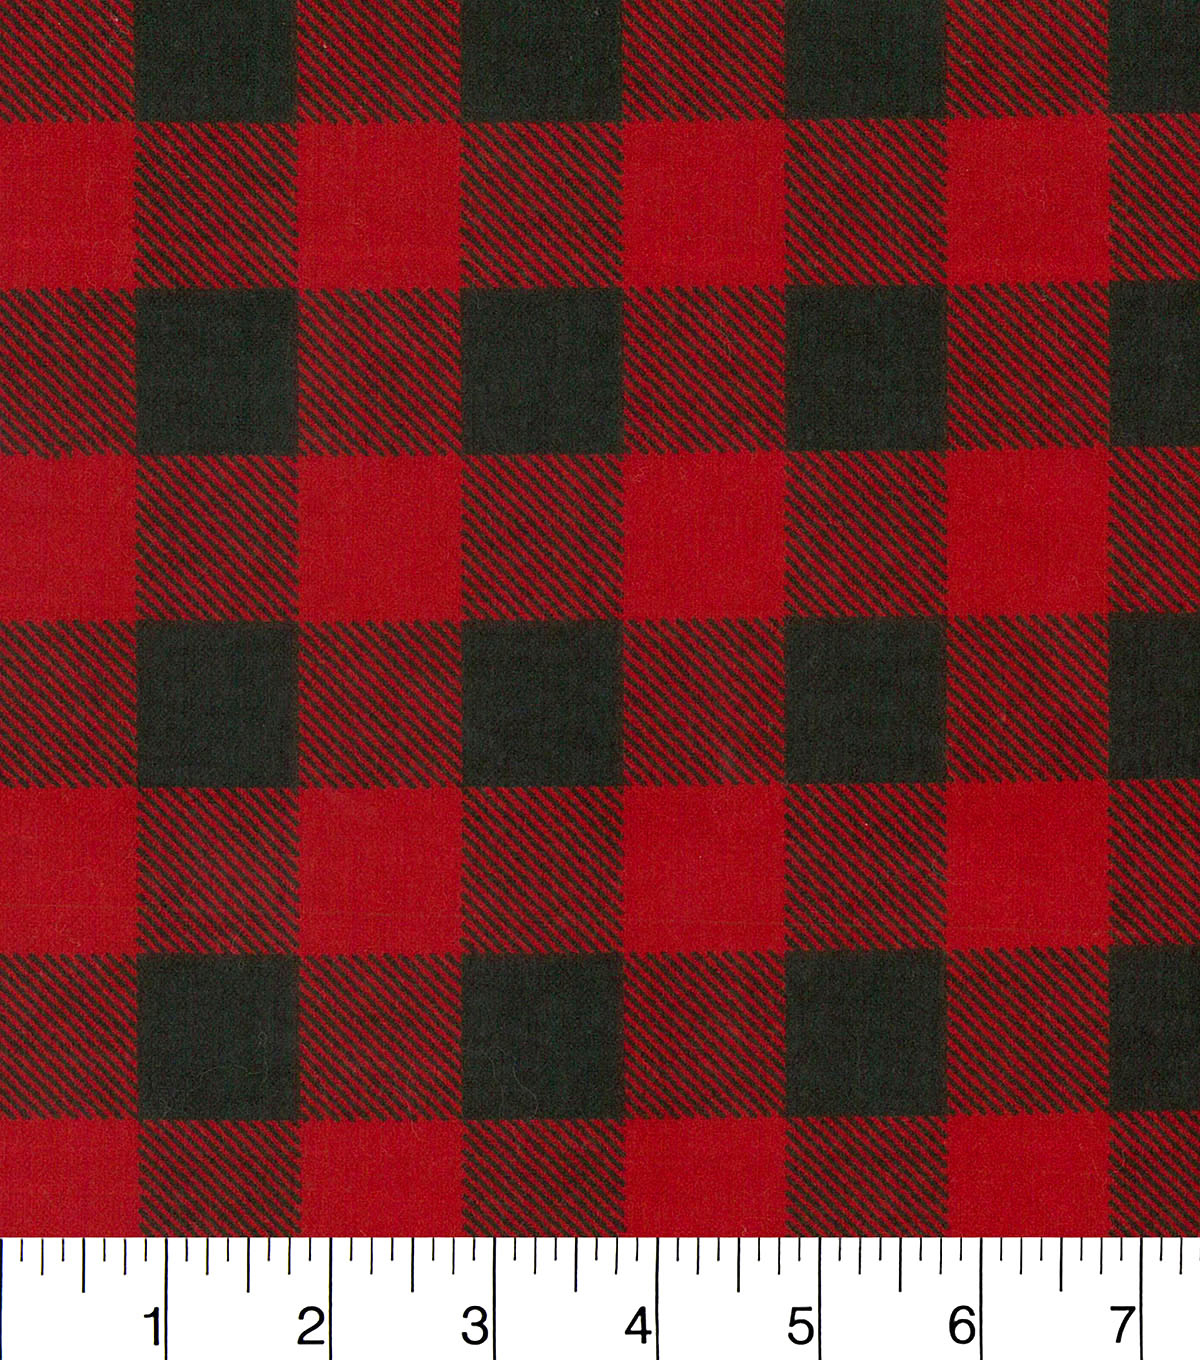 Home Decor Clearance Sale Snuggle Flannel Fabric 42 Quot Red Black Buffalo Check Joann